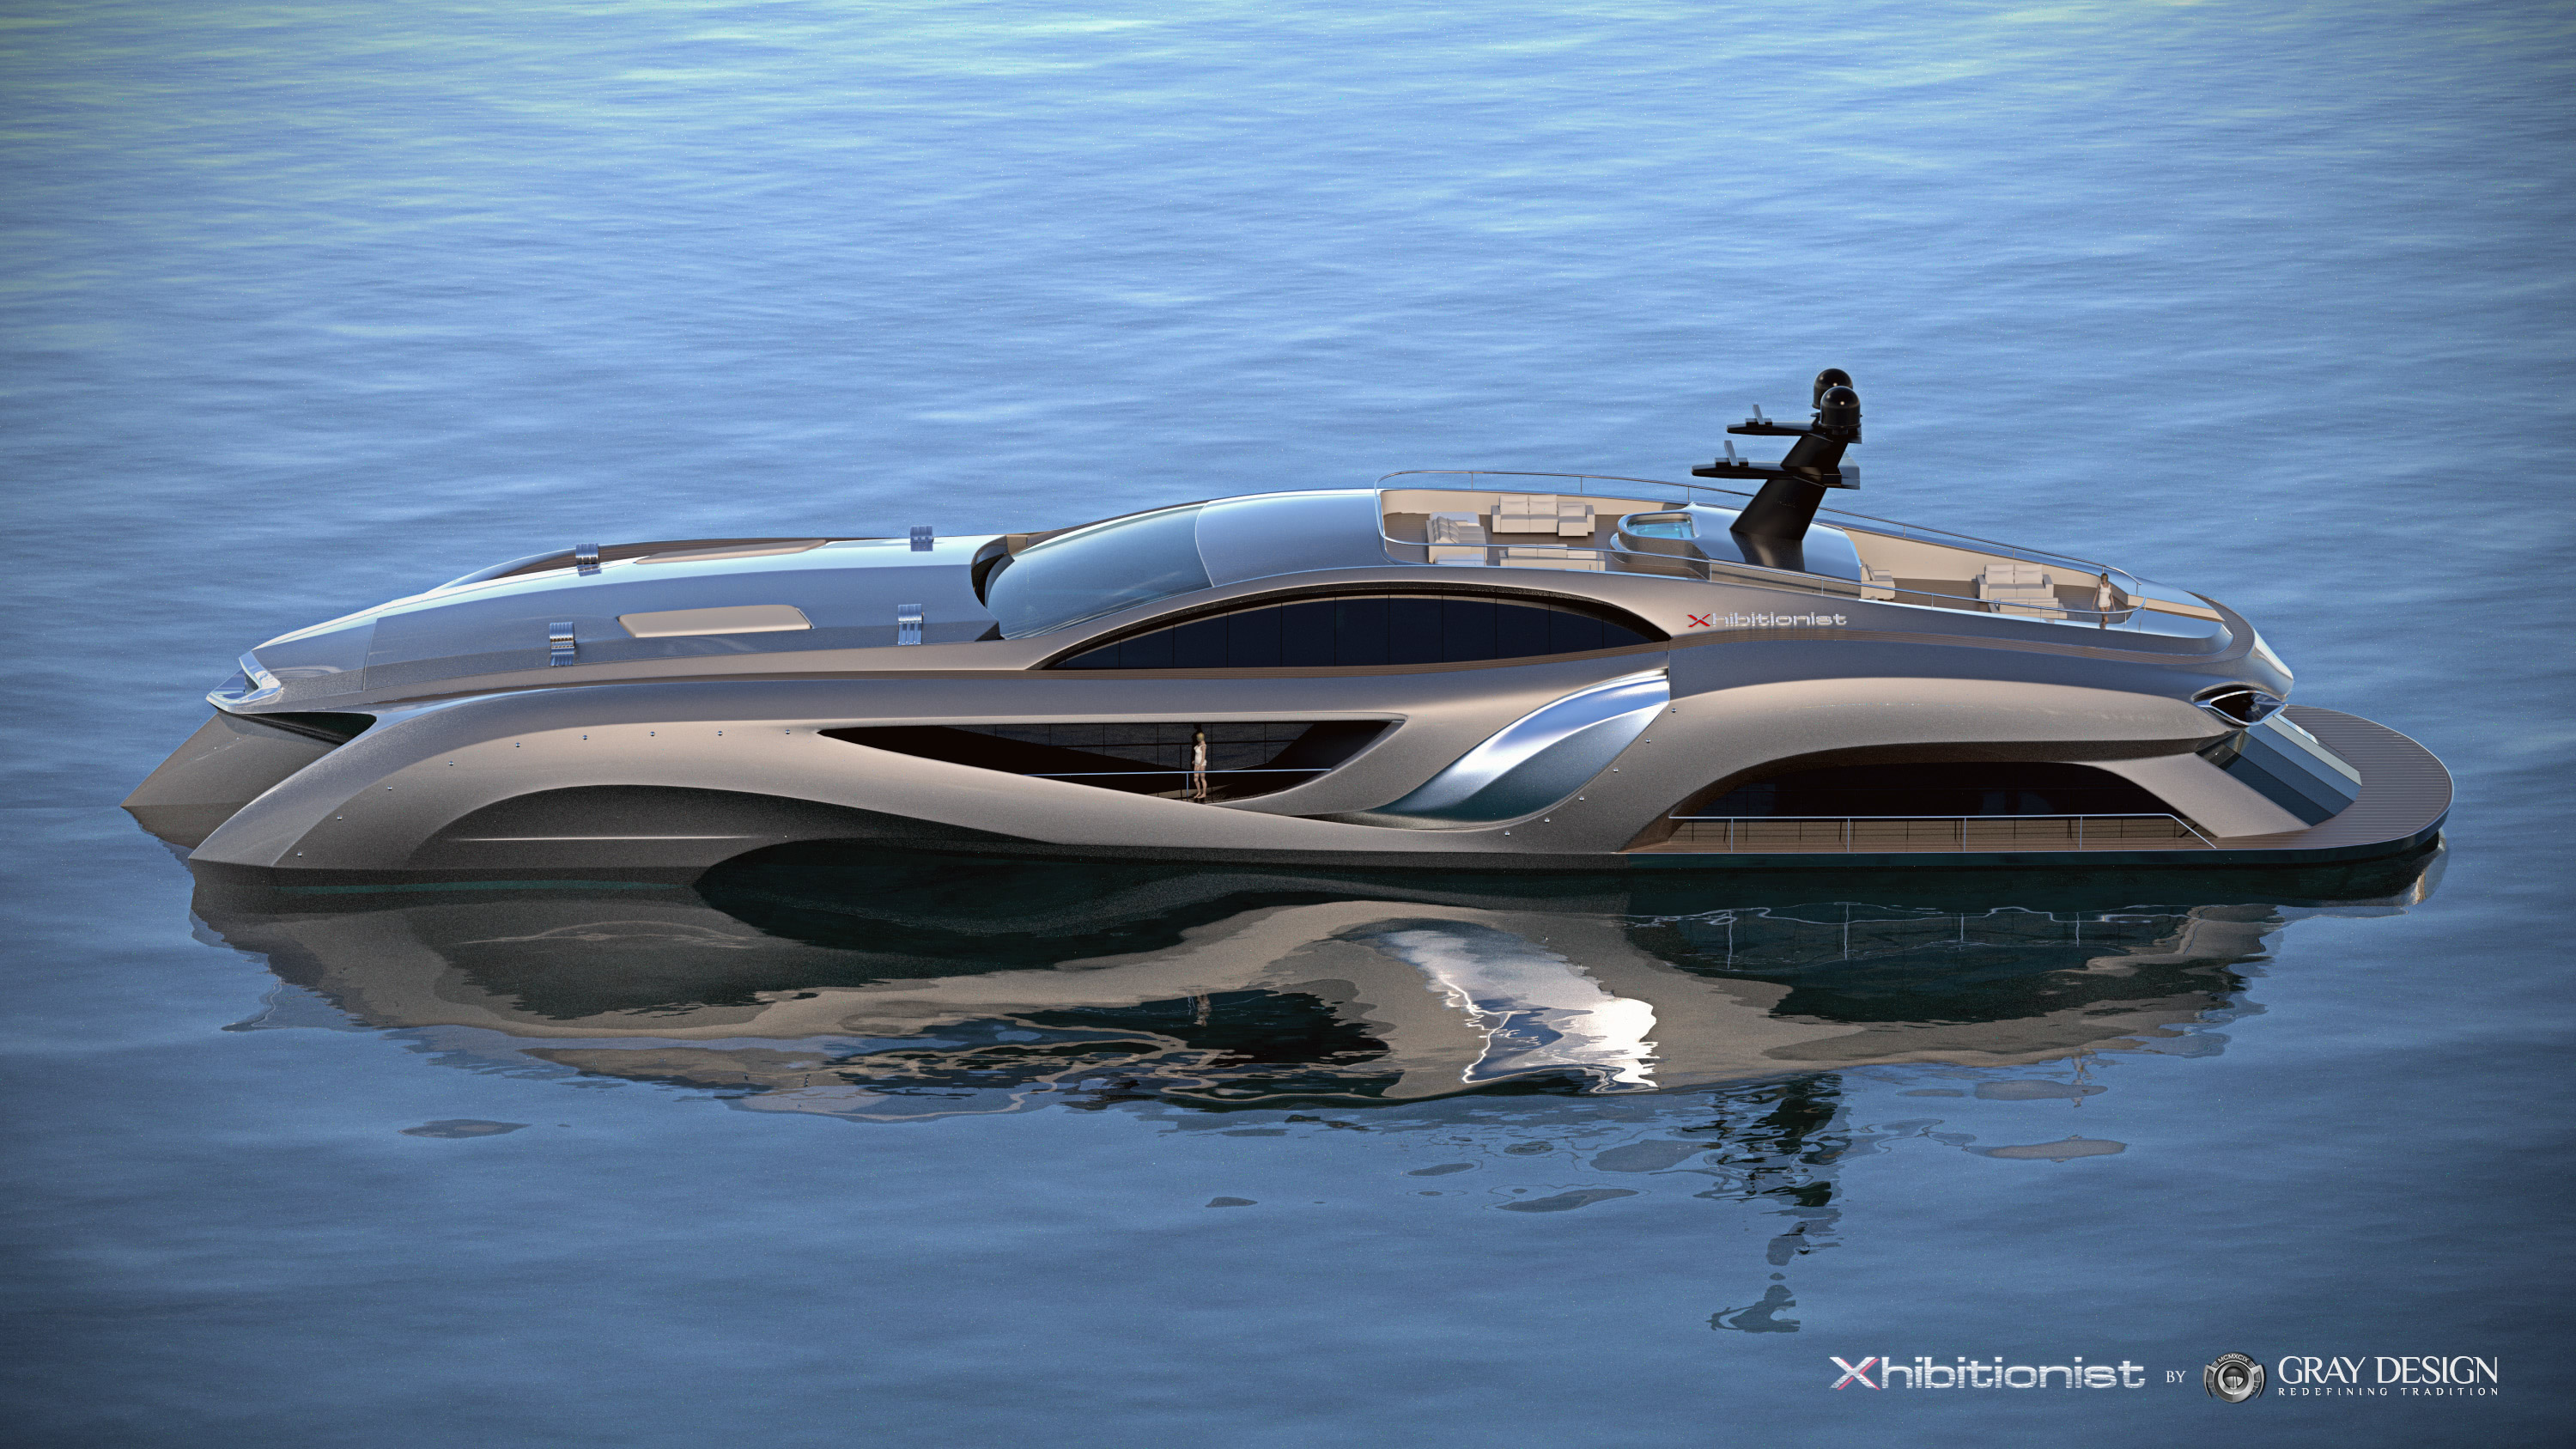 View Large Version Of Image Eduard Gray Designed 75 Metre Mega Yacht XHIBITIONIST Concept